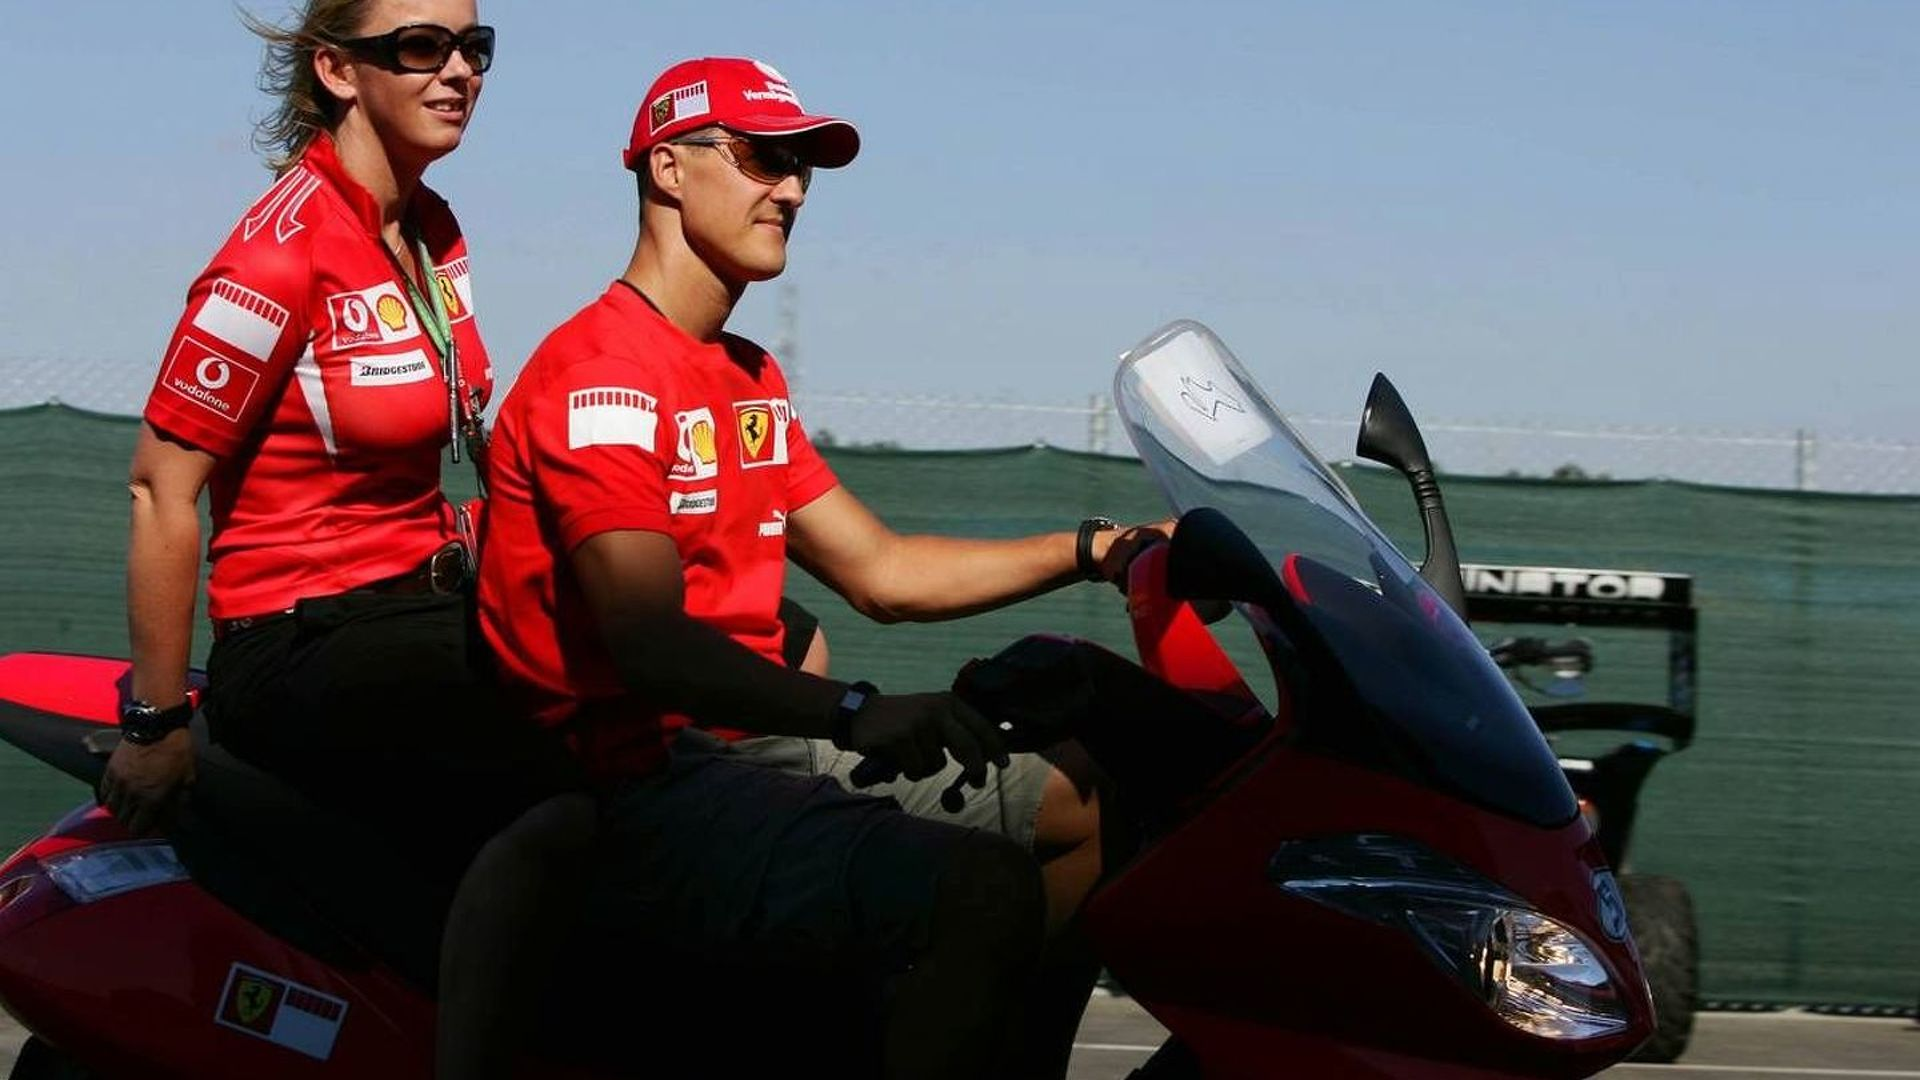 Kehm defends handling of Schumacher privacy